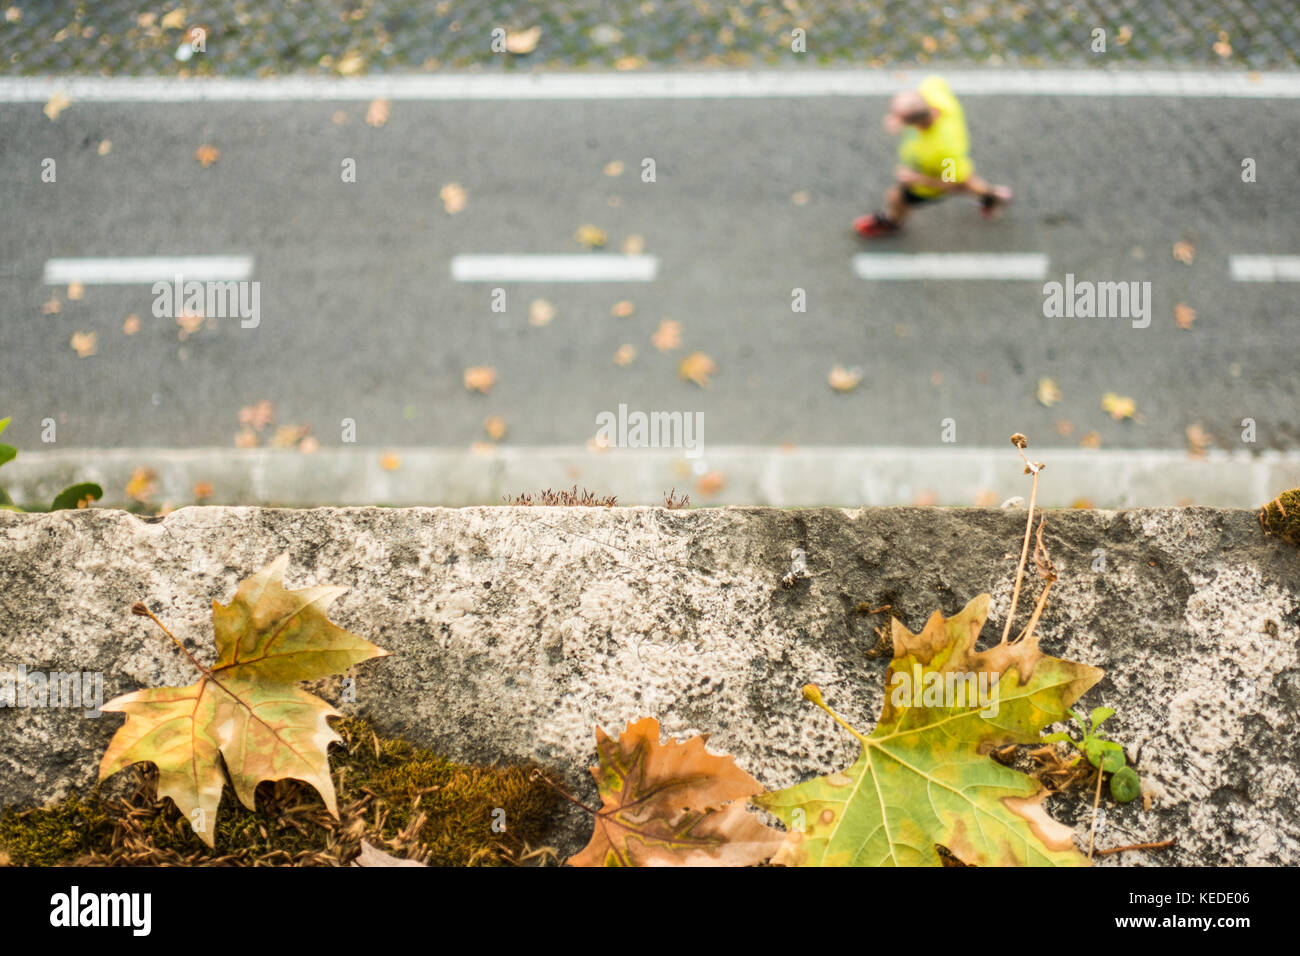 -Selective Focus- View from above, defocused/blurred person with a yellow t-shirt  is running on a pedestrian track. - Stock Image